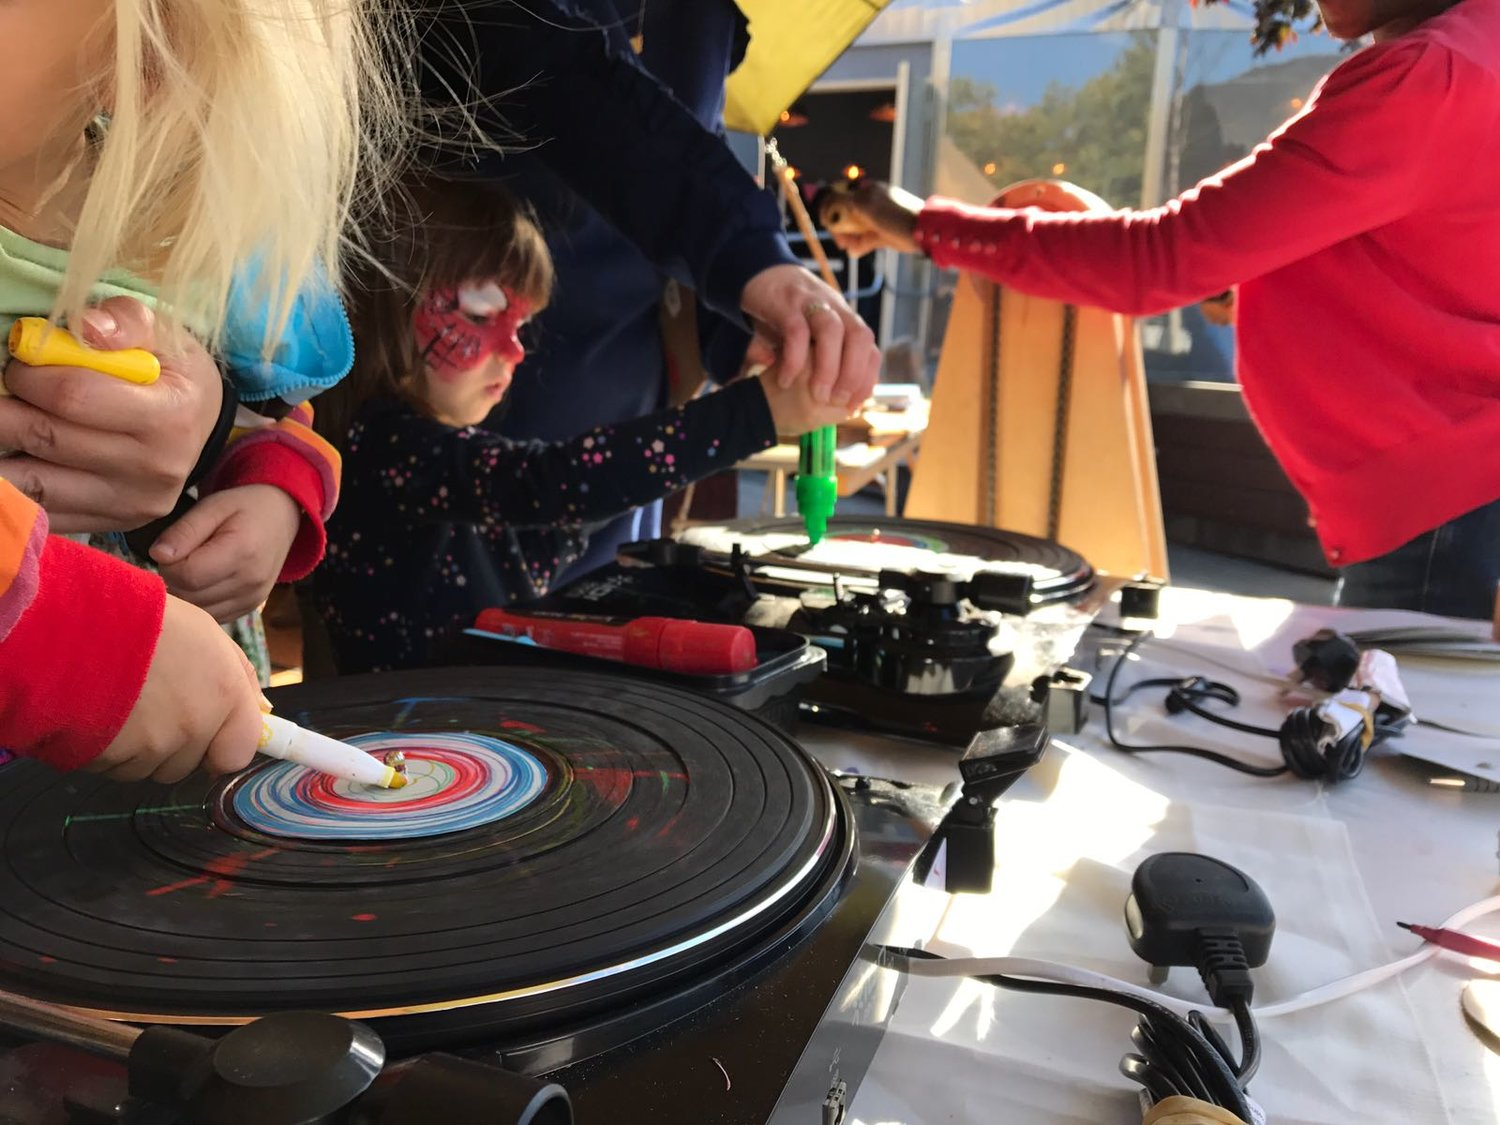 Spinning art at High Tide festival with Bebop Baby.